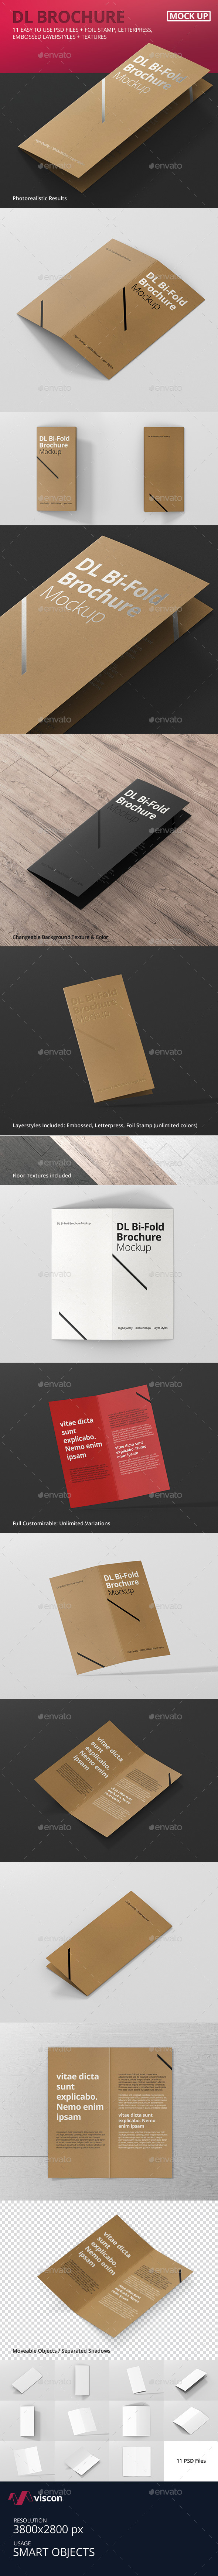 DL Bi-Fold Brochure Mock-Up - Brochures Print